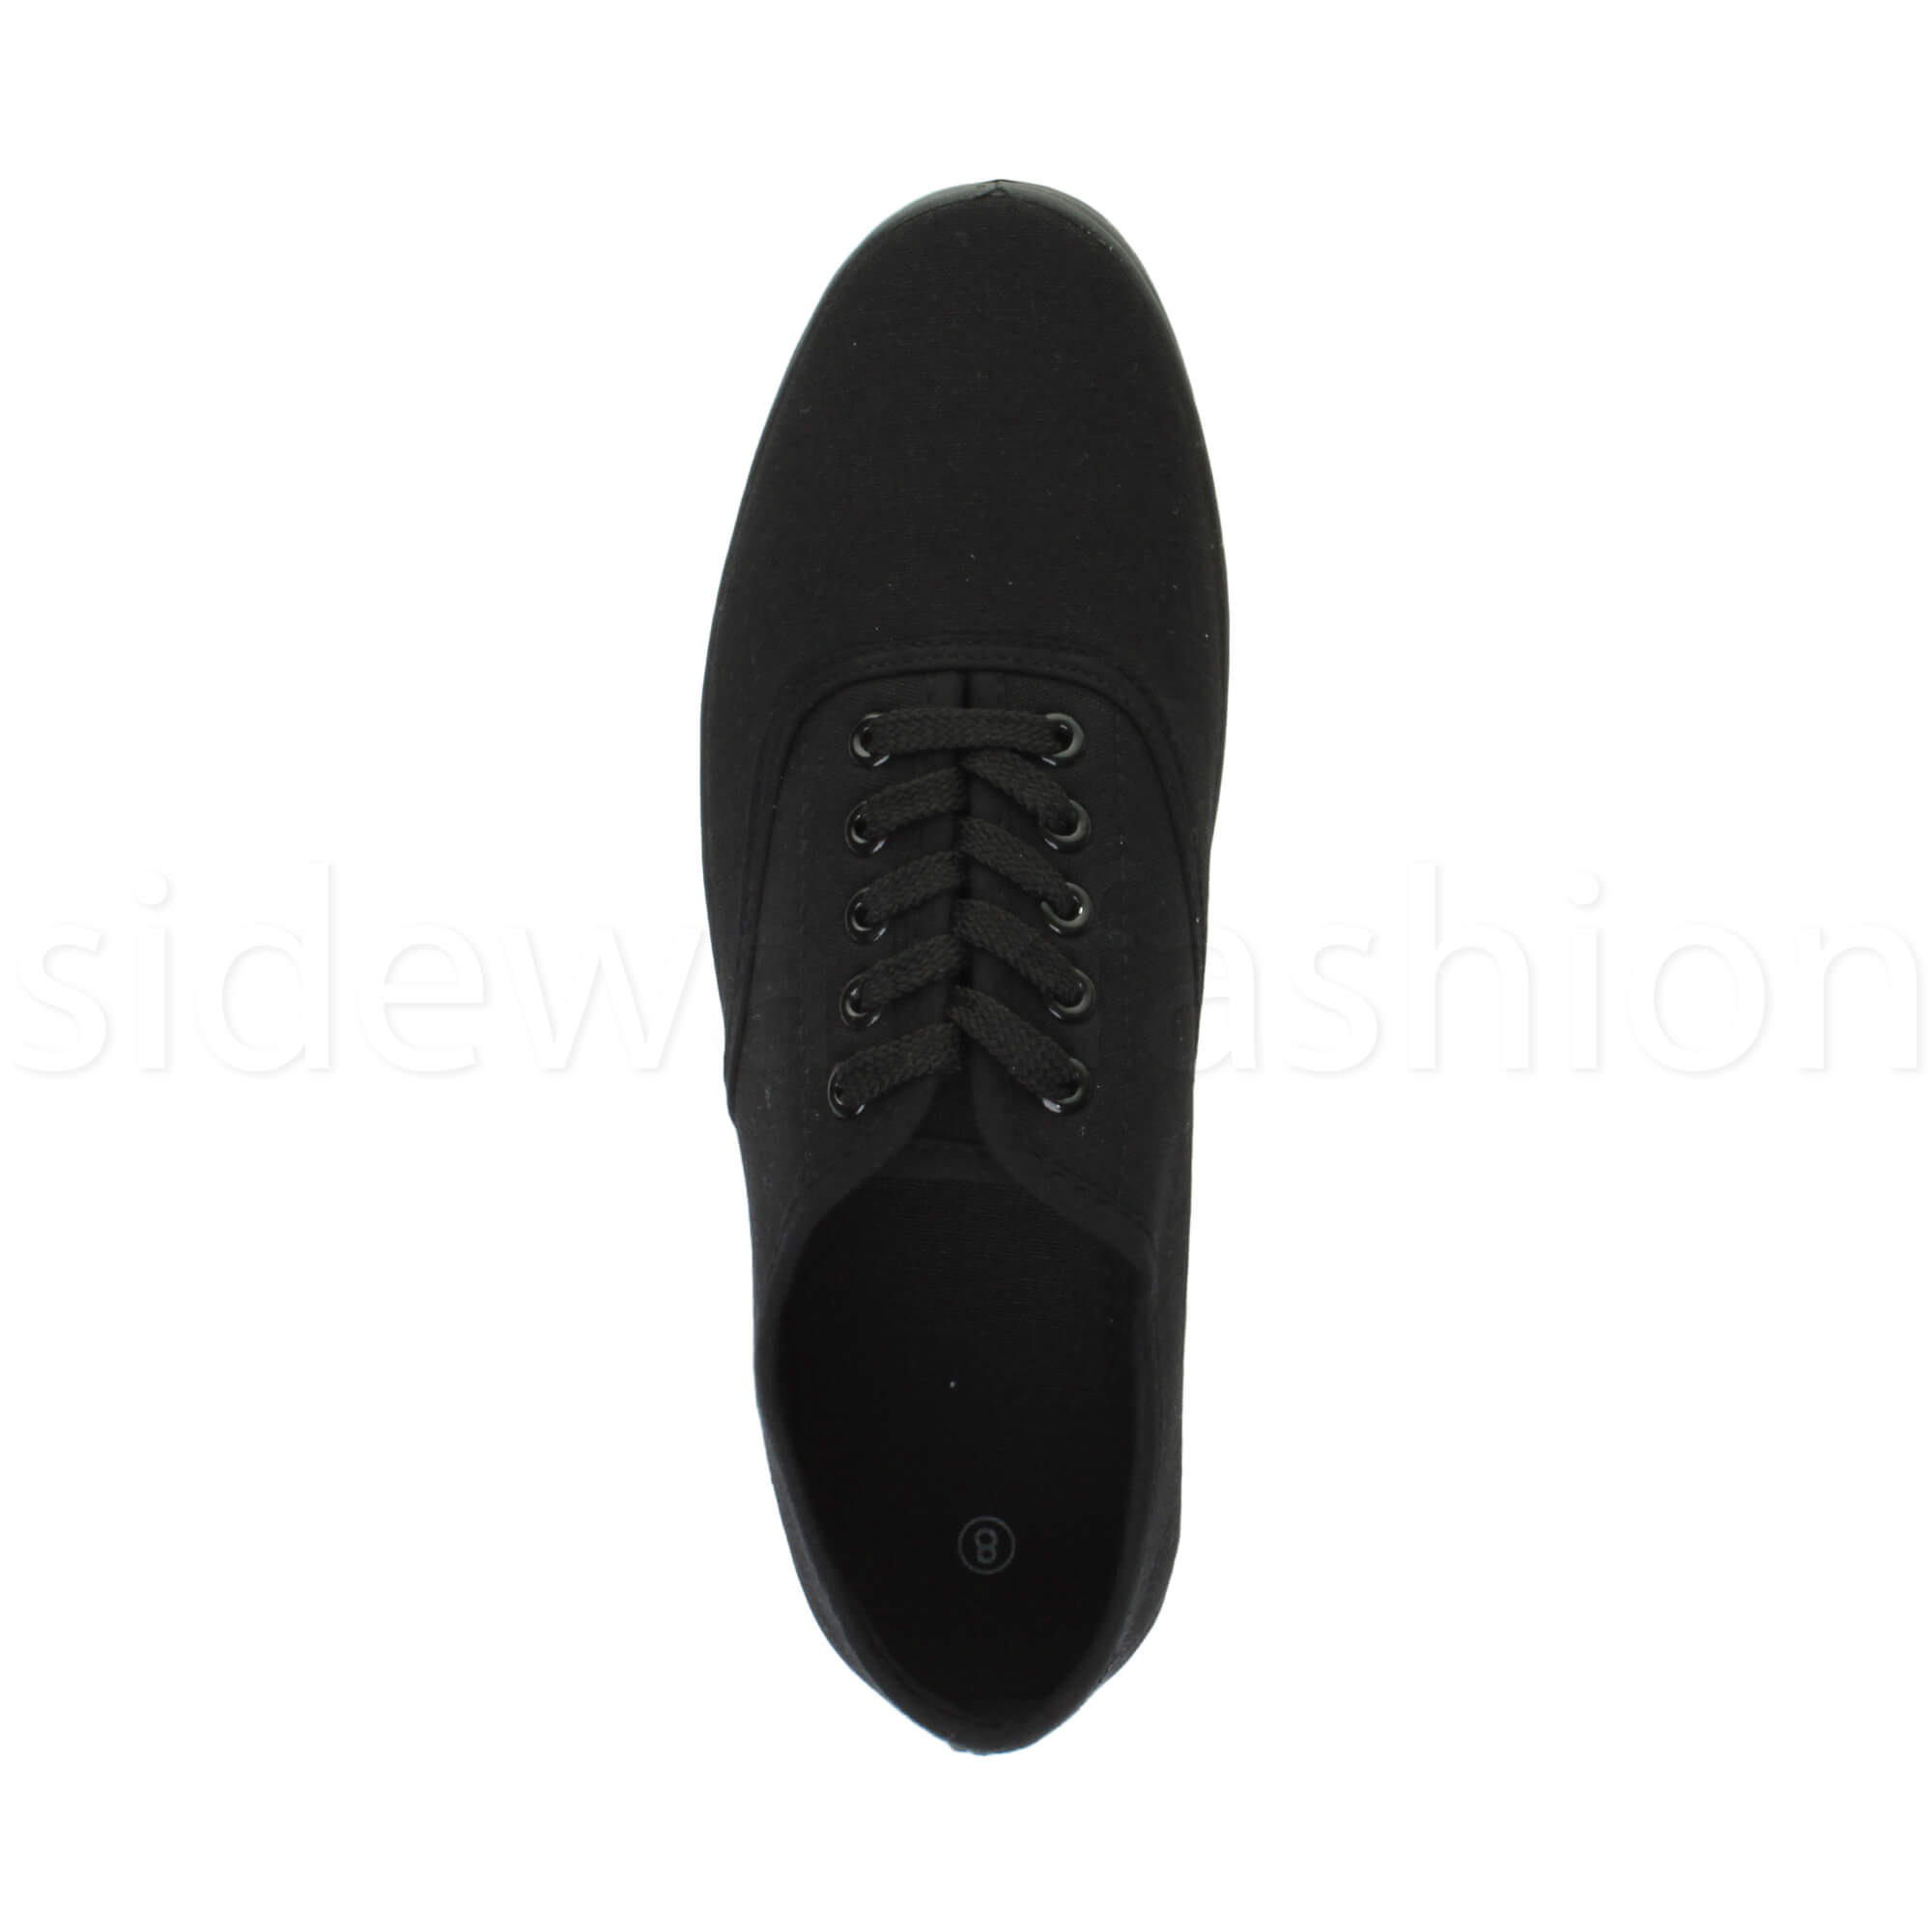 Mens-canvas-trainers-plimsoles-plimsolls-shoes-lace-up-pumps-size thumbnail 6